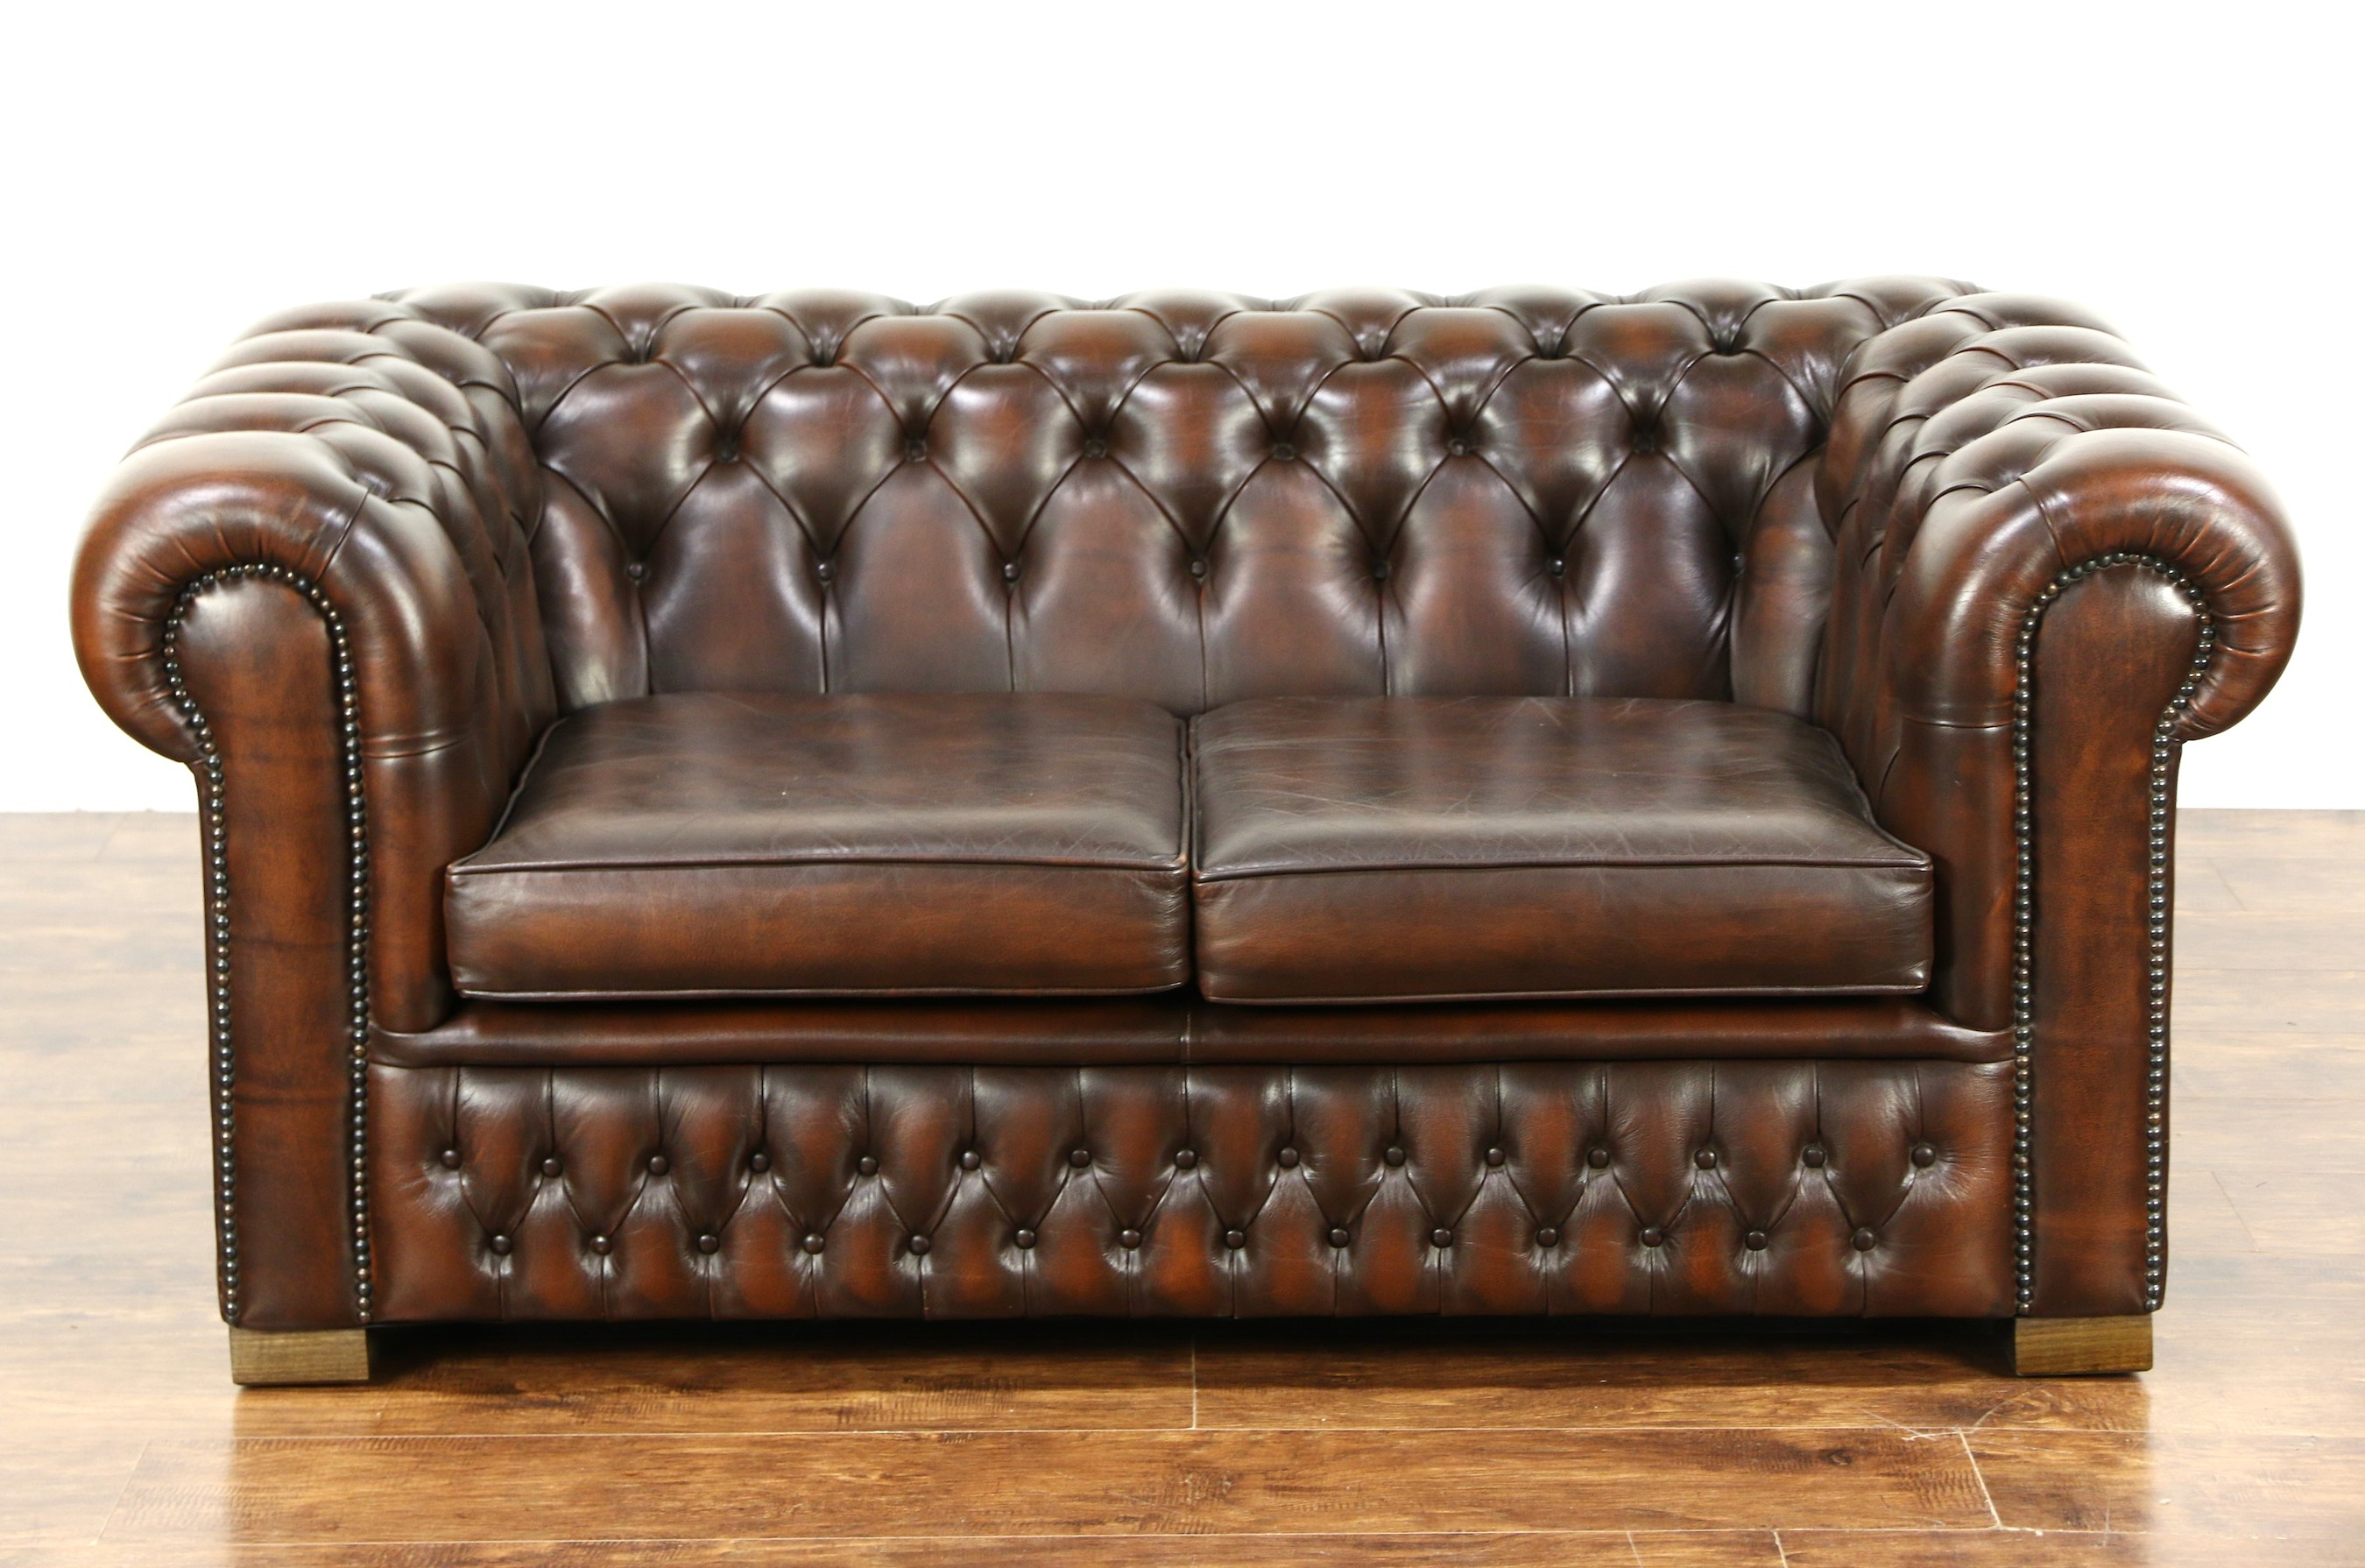 SOLD - Chesterfield Tufted Brown Leather Vintage Scandinavian Loveseat -  Harp Gallery